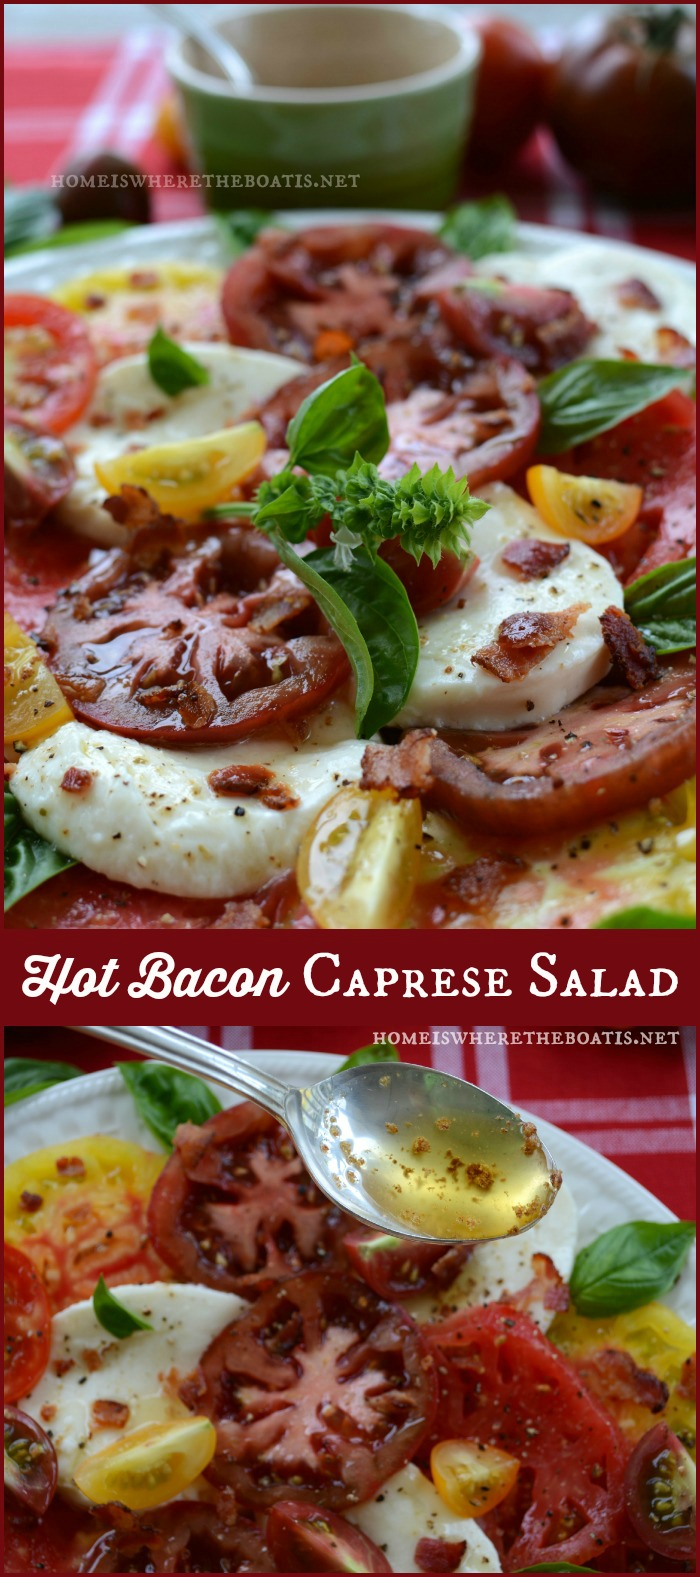 Hot Bacon Caprese Salad